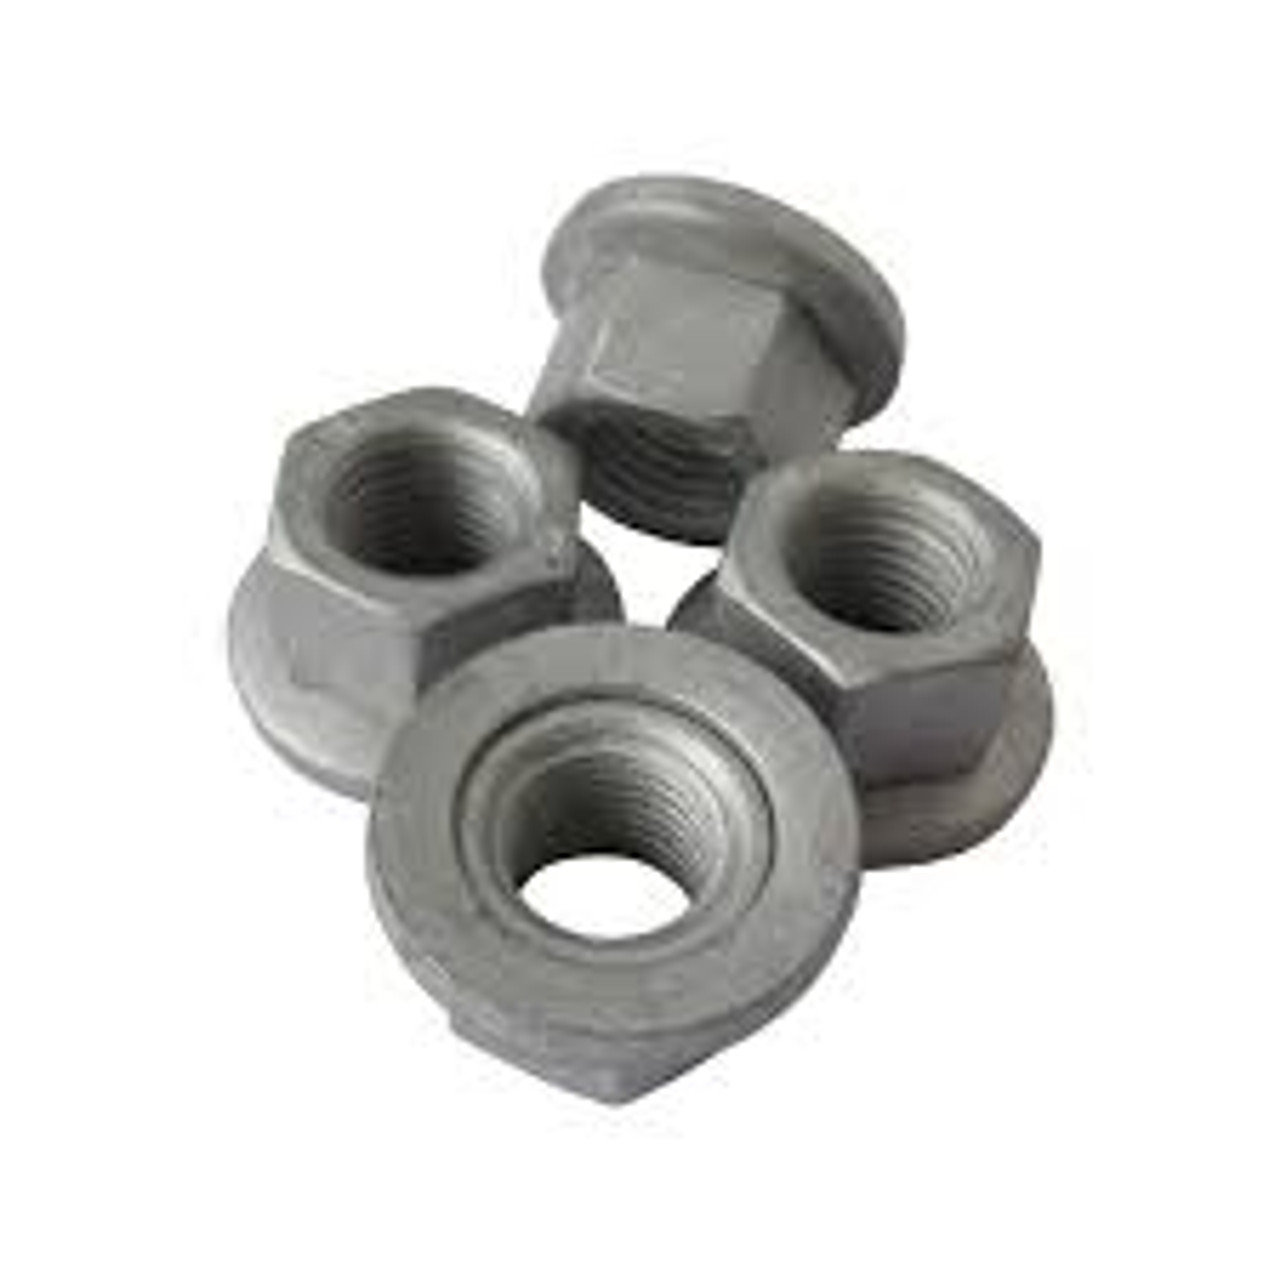 """Free Spinning Washer Nut 3/8 - 16 Thread Washer O.D. : 7/8"""" Hex Size: 9/16"""" OEM# 376785 Phosphate 25 Per Box Click Next Image For Nut Size Chart"""